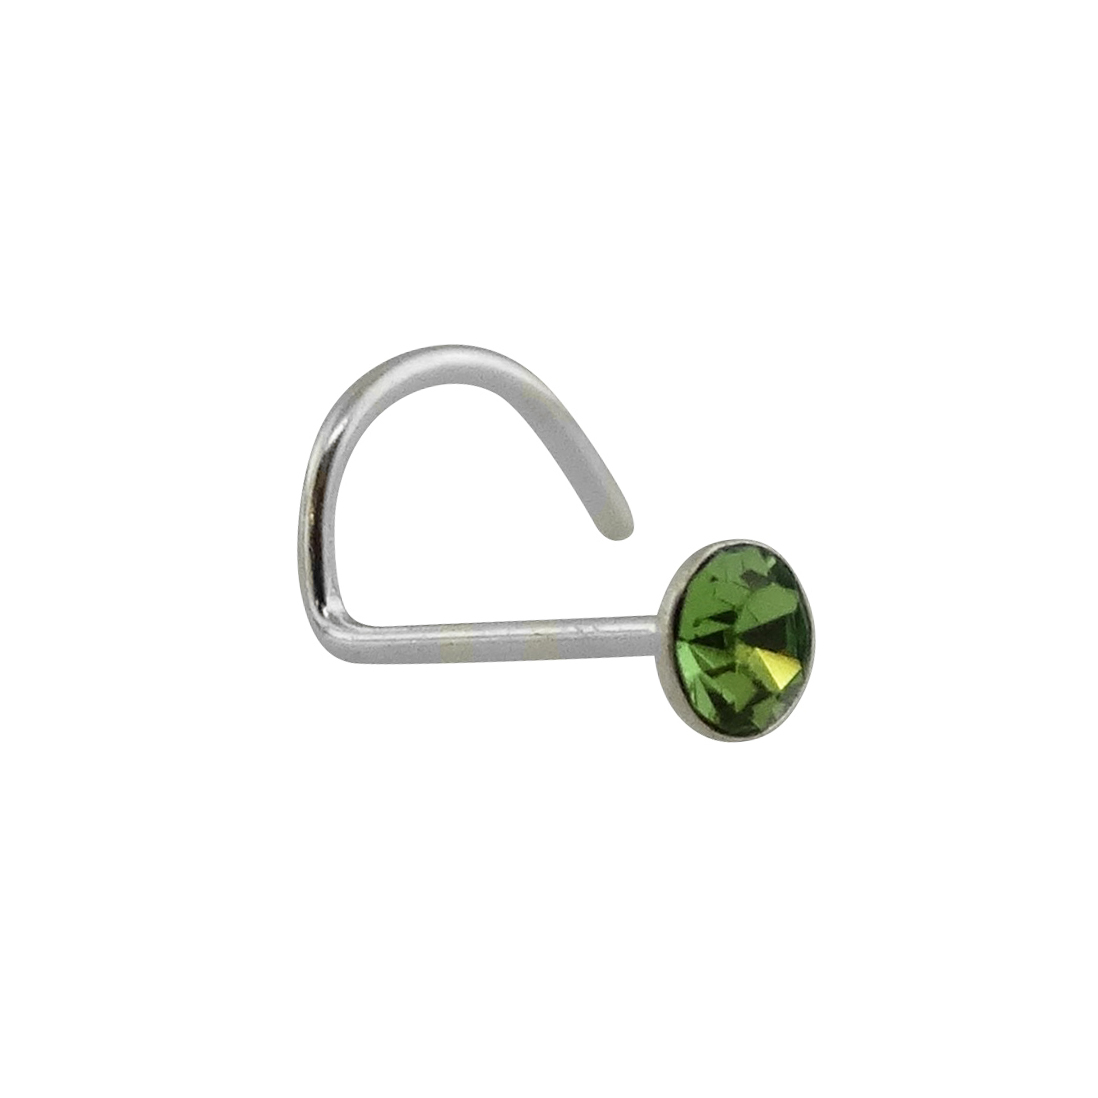 Light Green Round CZ Nose Stud with Nostril Screw - 925 Sterling Silver